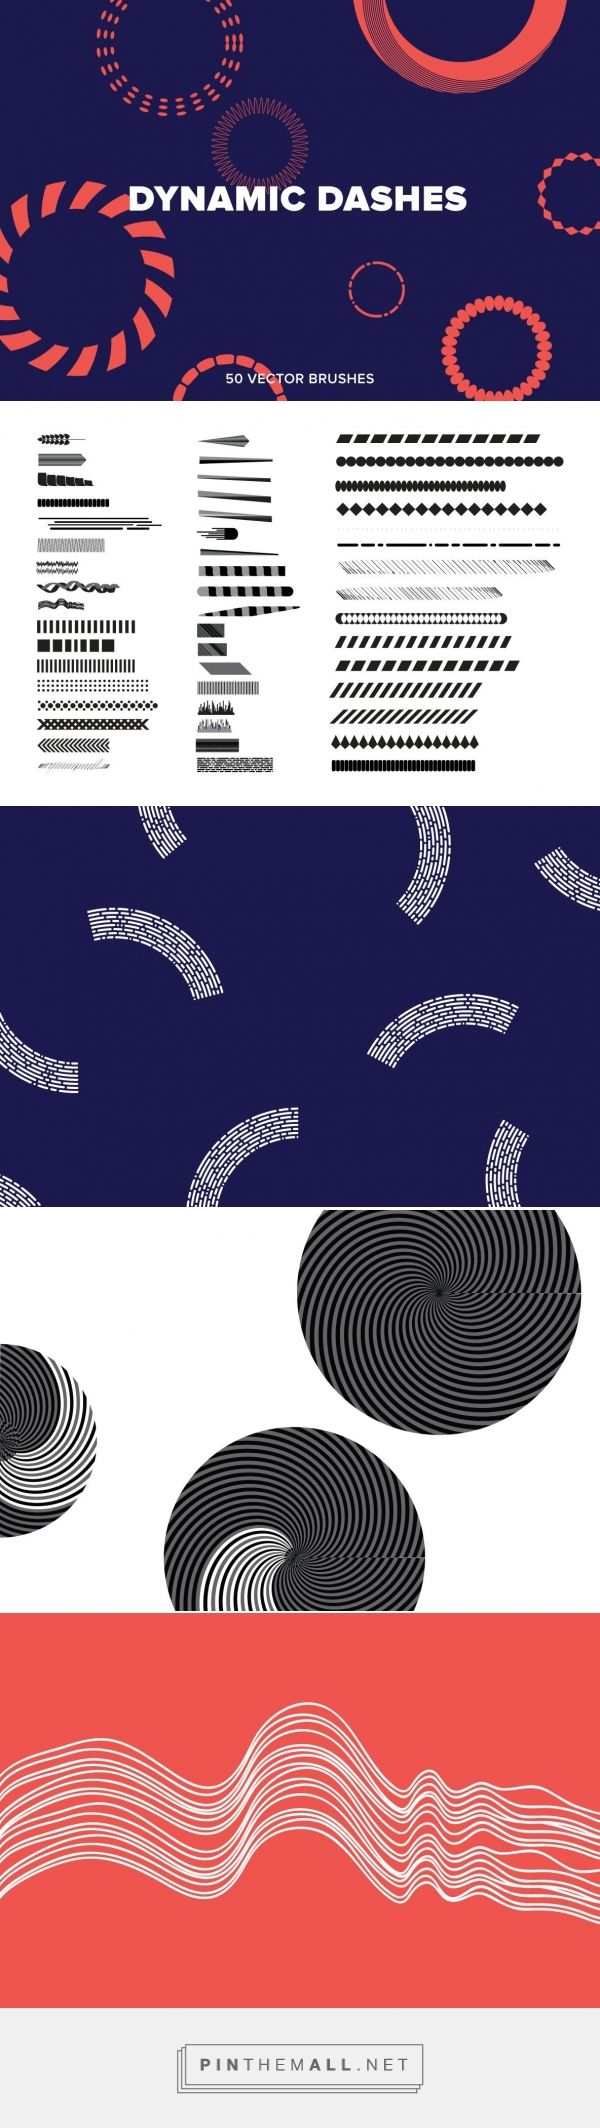 Dynamic Dashes - Extras - YouWorkForThem - This product download contains50Stock Brushes. Dynamic dashed segments and sequences of shapes make up this set of 50 brushes. Mixed shades and alternating geometries come with ordered contours and decorative linear forms. Designed by Michael Cina and YouWorkForThem. (affiliate)